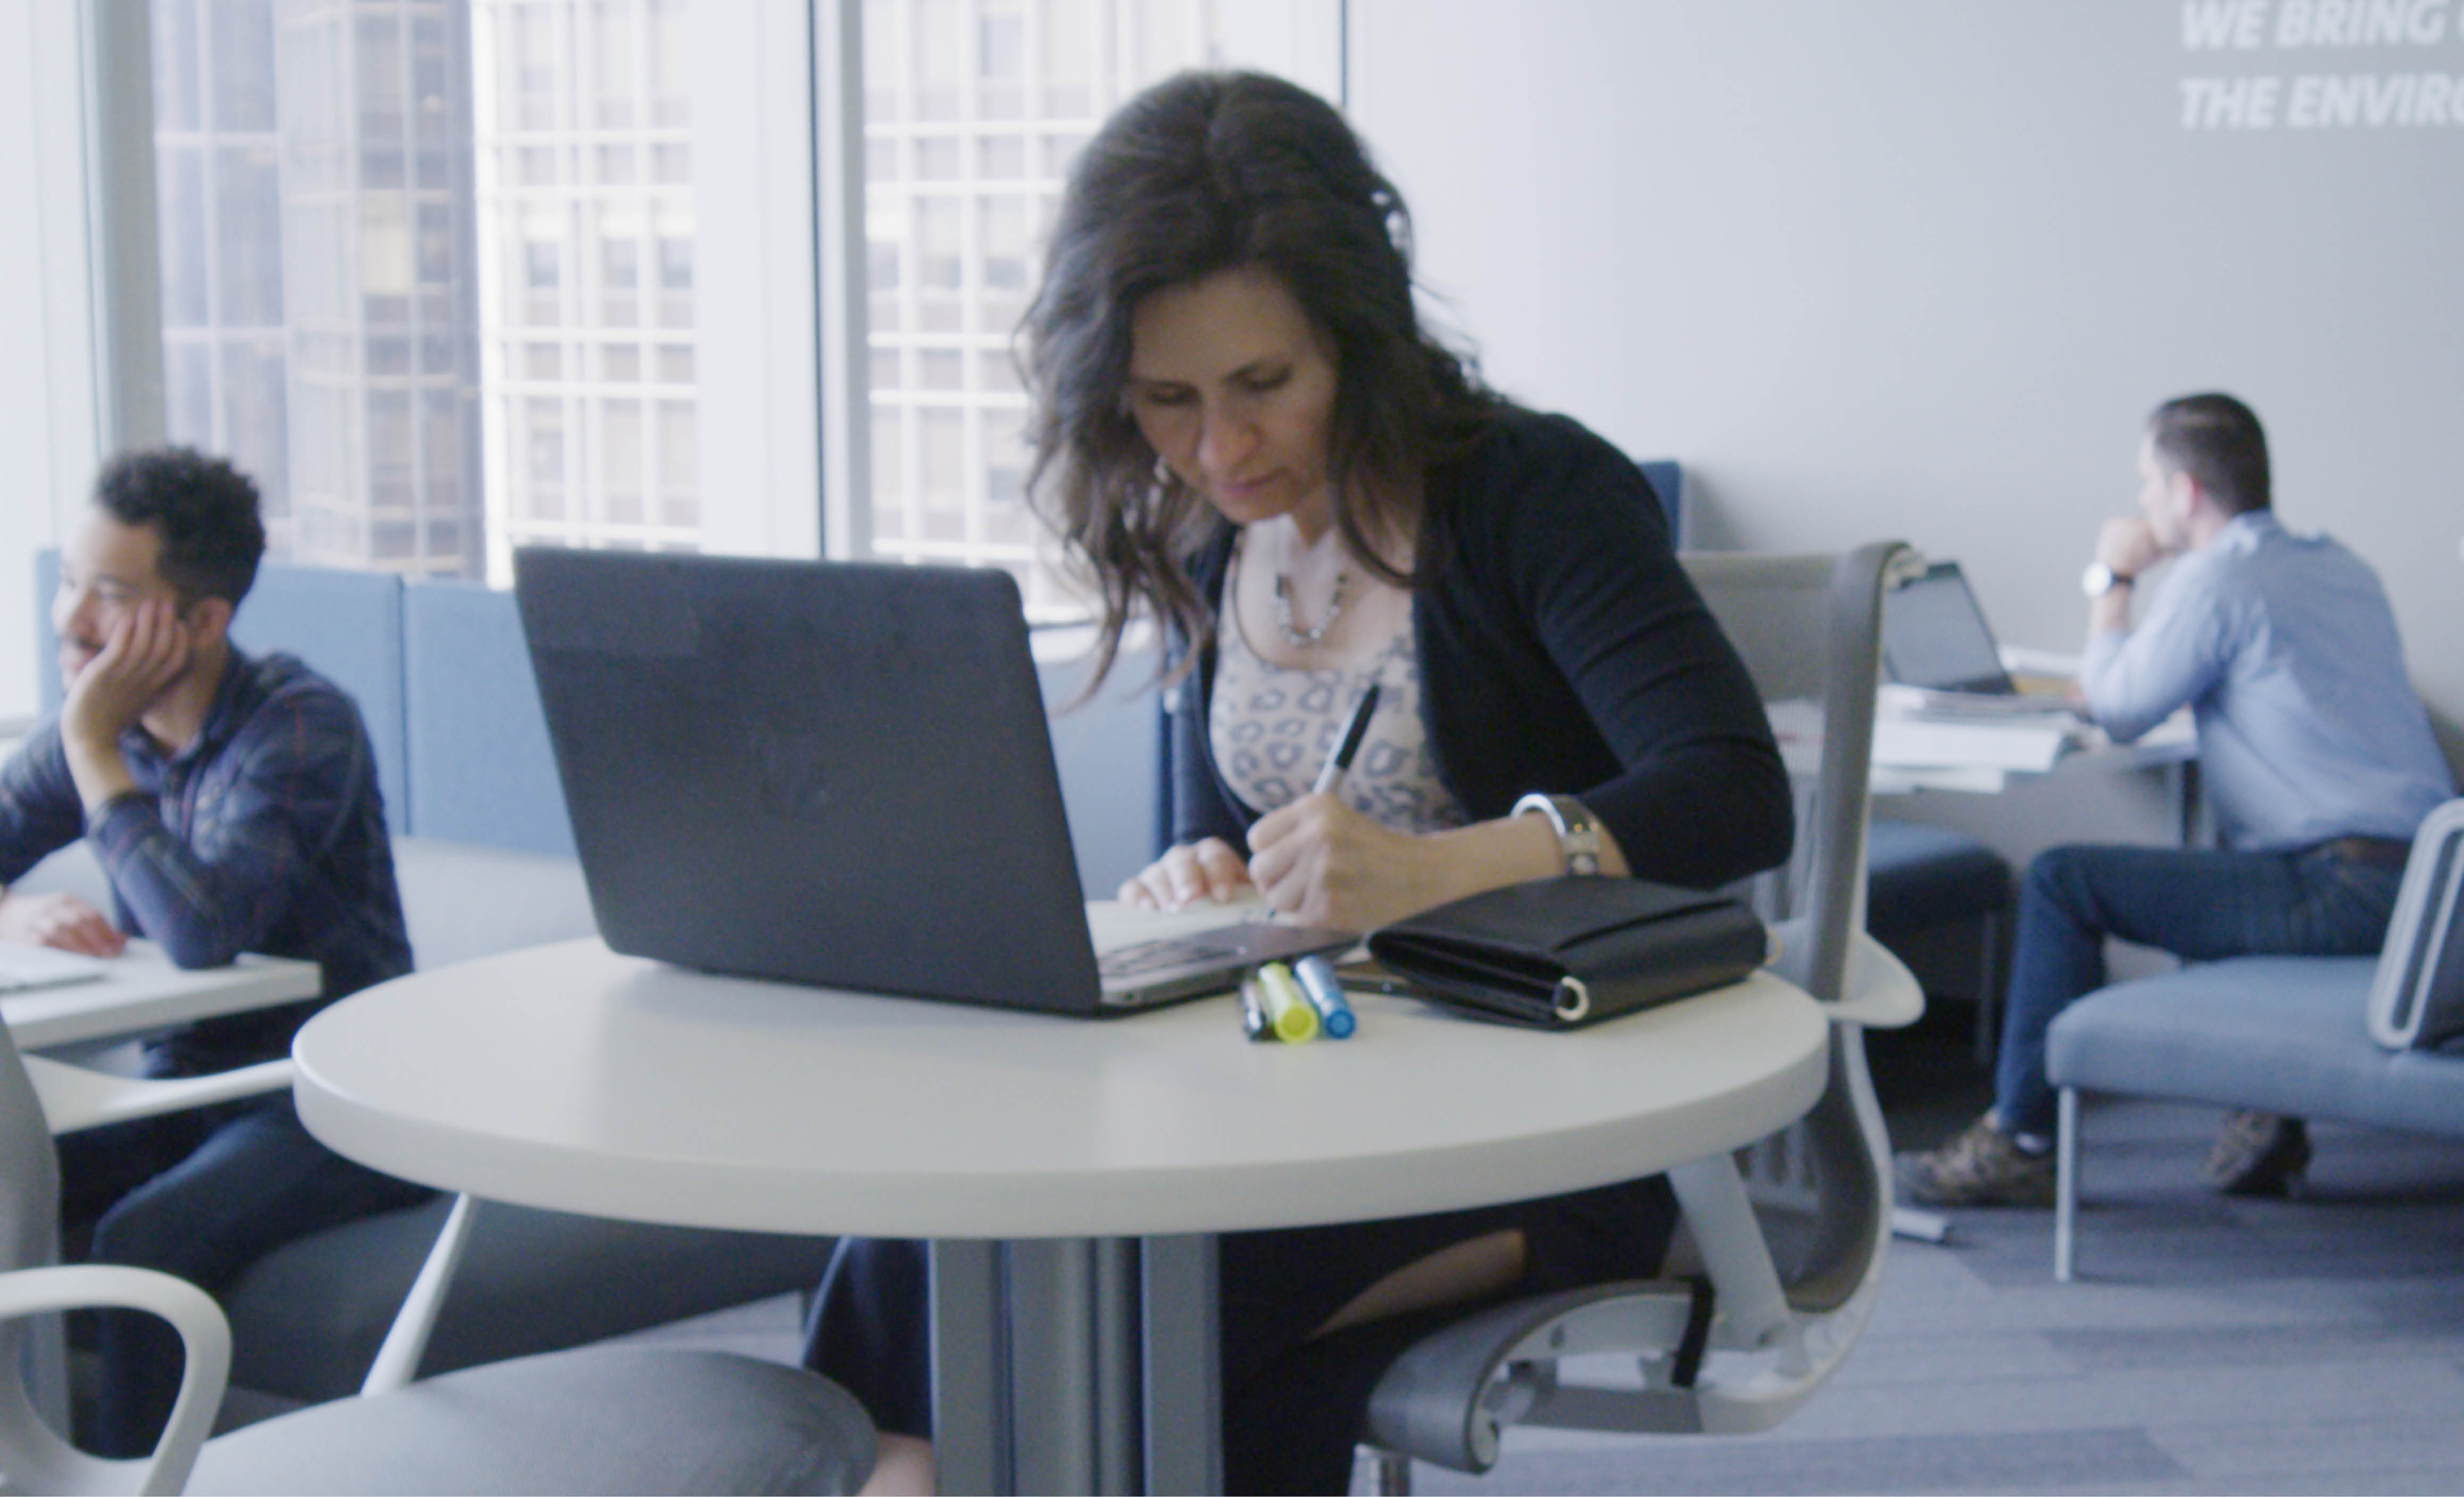 Woman working on a laptop in a shared workspace.